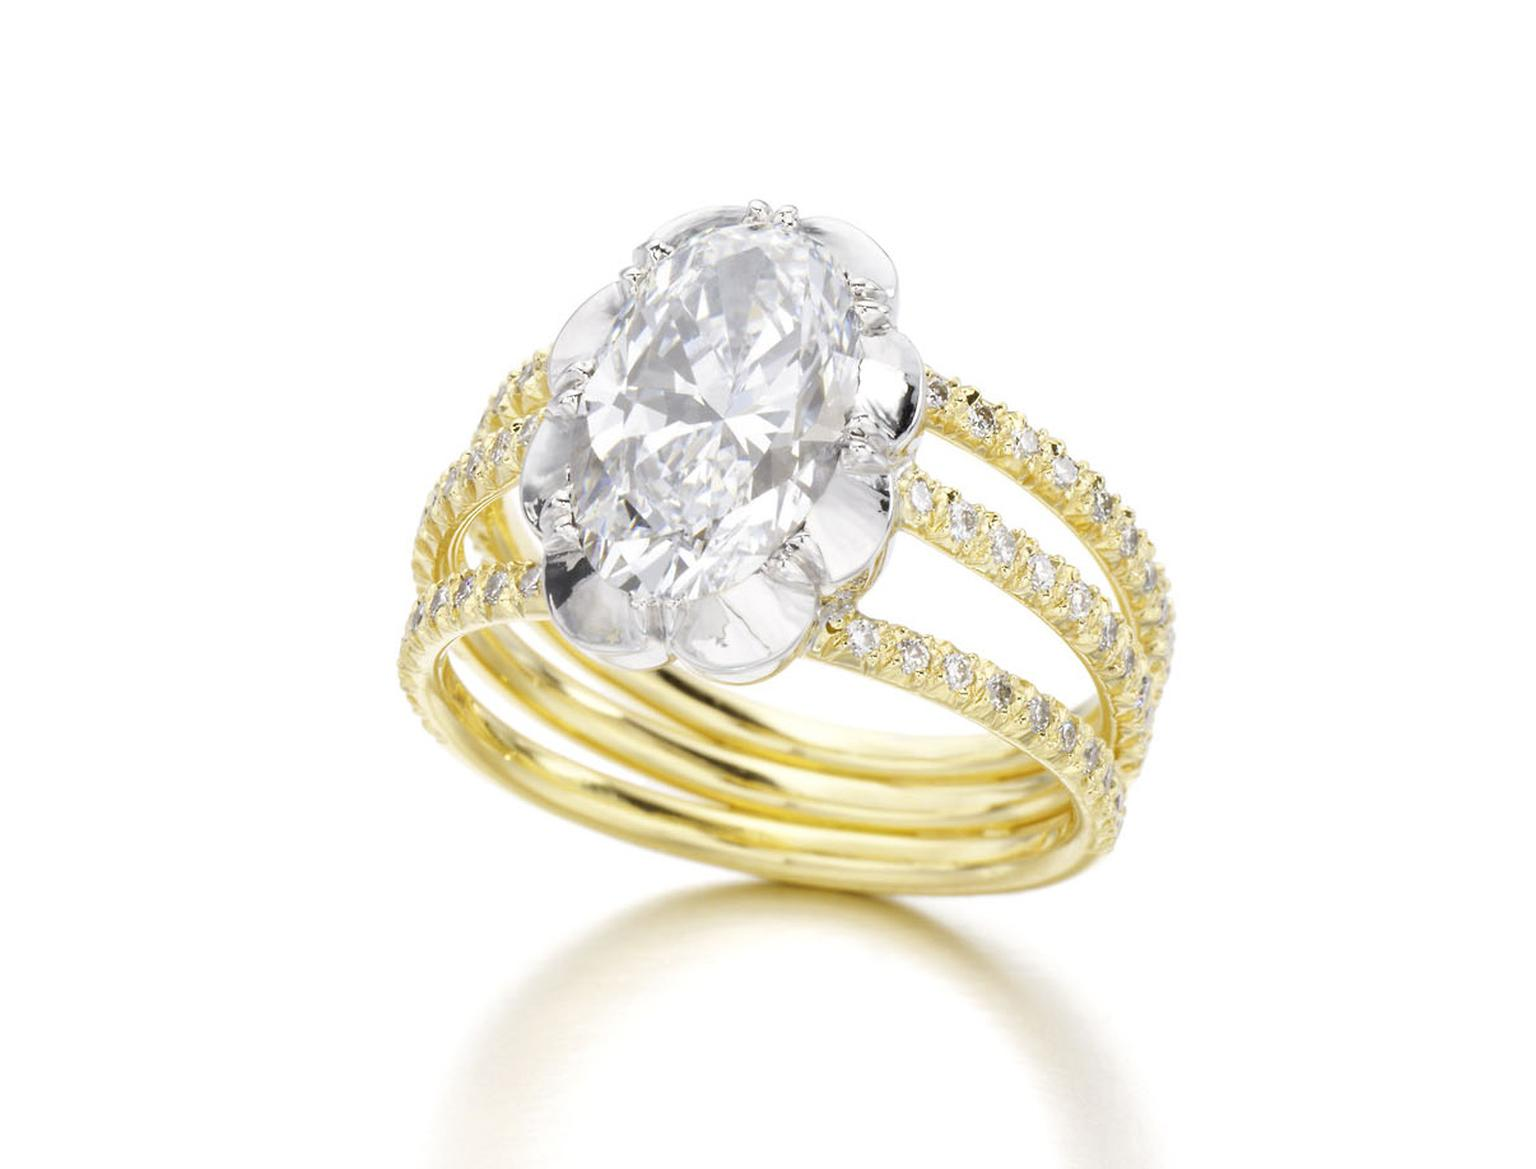 Jessica McCormack yellow gold Oval Diamond Trio ring, set with a 2.24ct oval cut diamond mounted in a Georgian style cut.